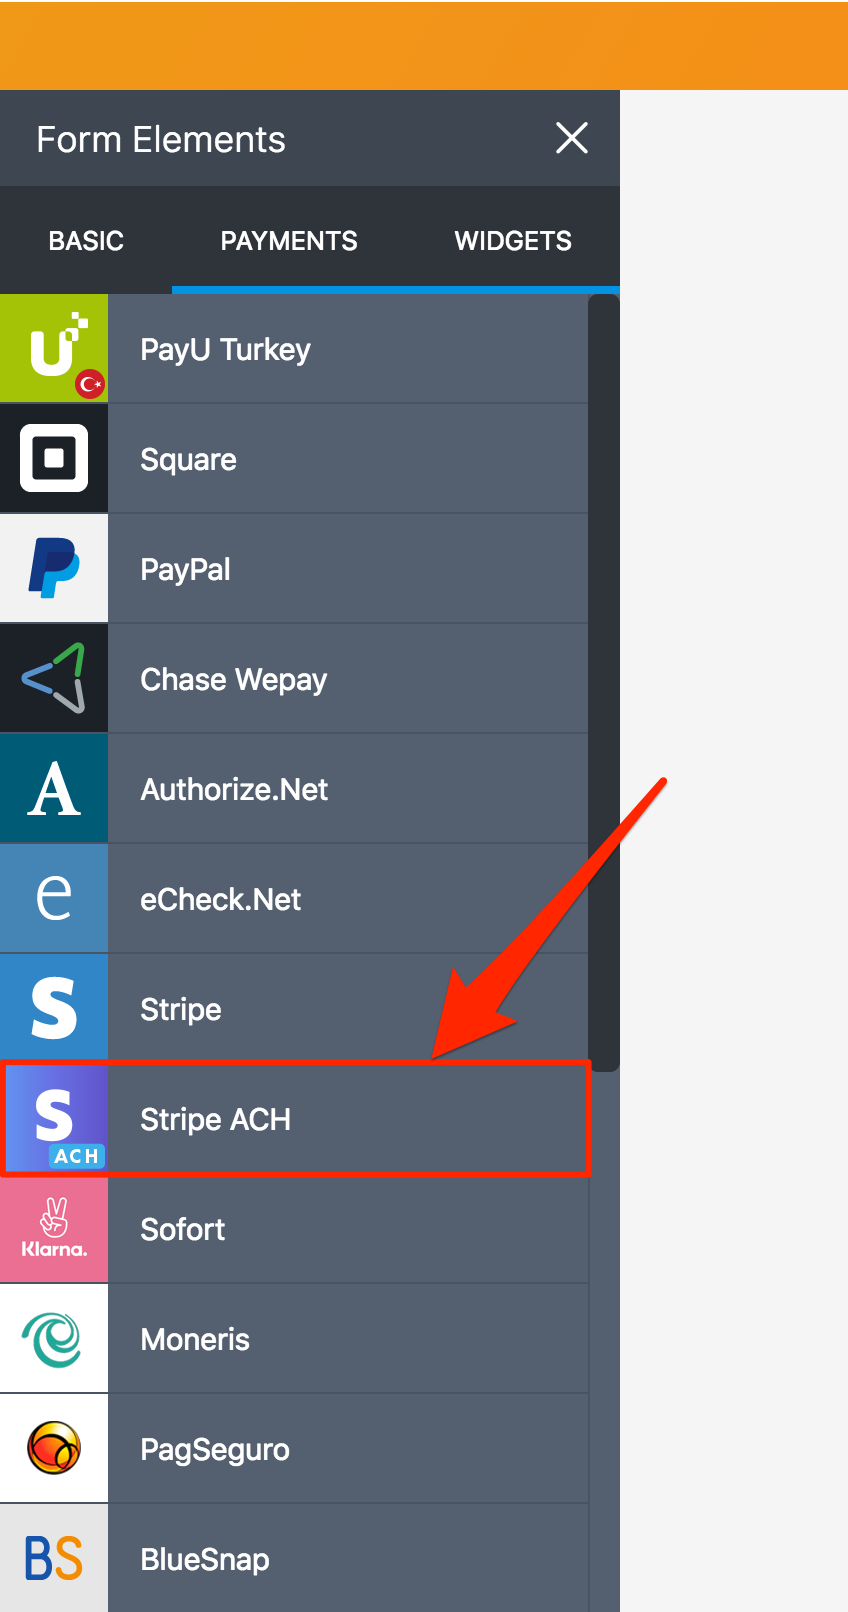 How to integrate Stripe ACH to your form?